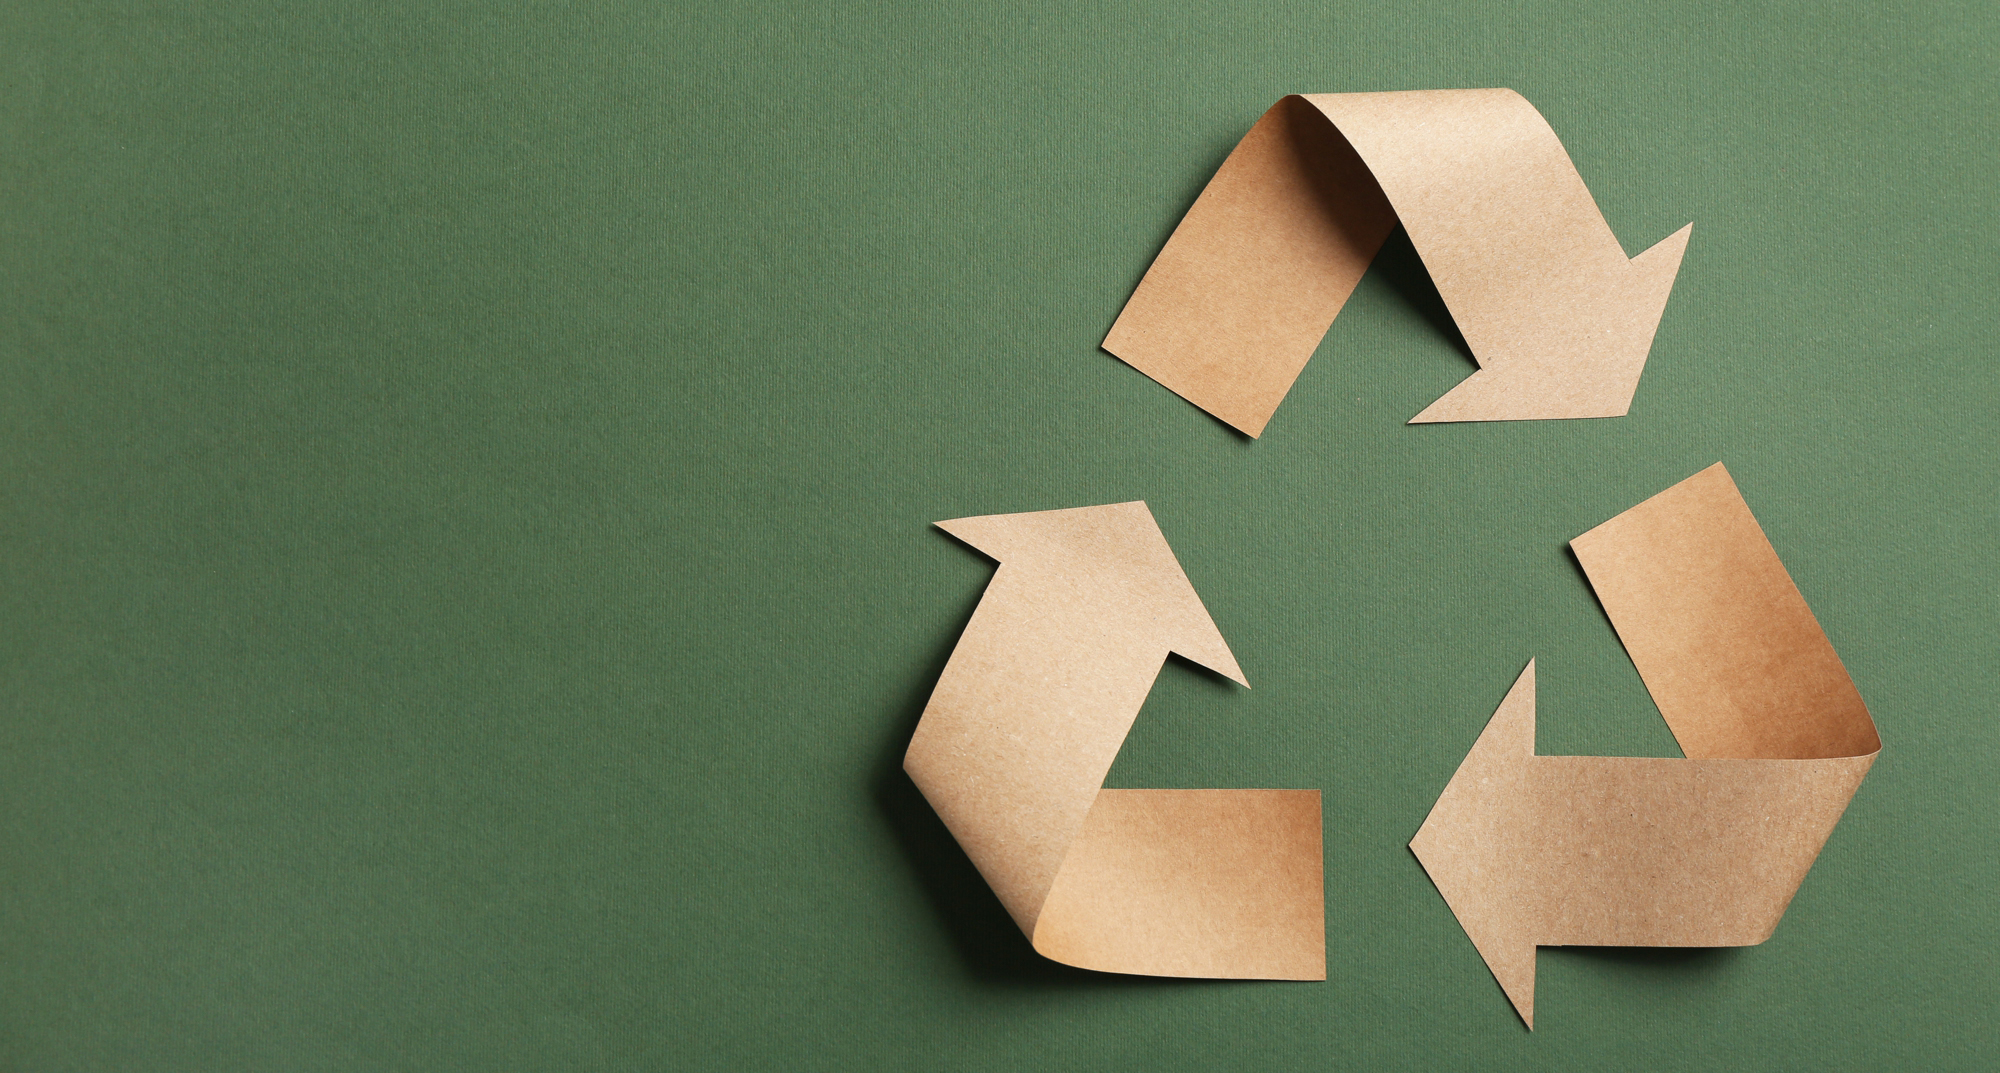 Recycling in South Africa, how are we doing? A very practical guide to getting started